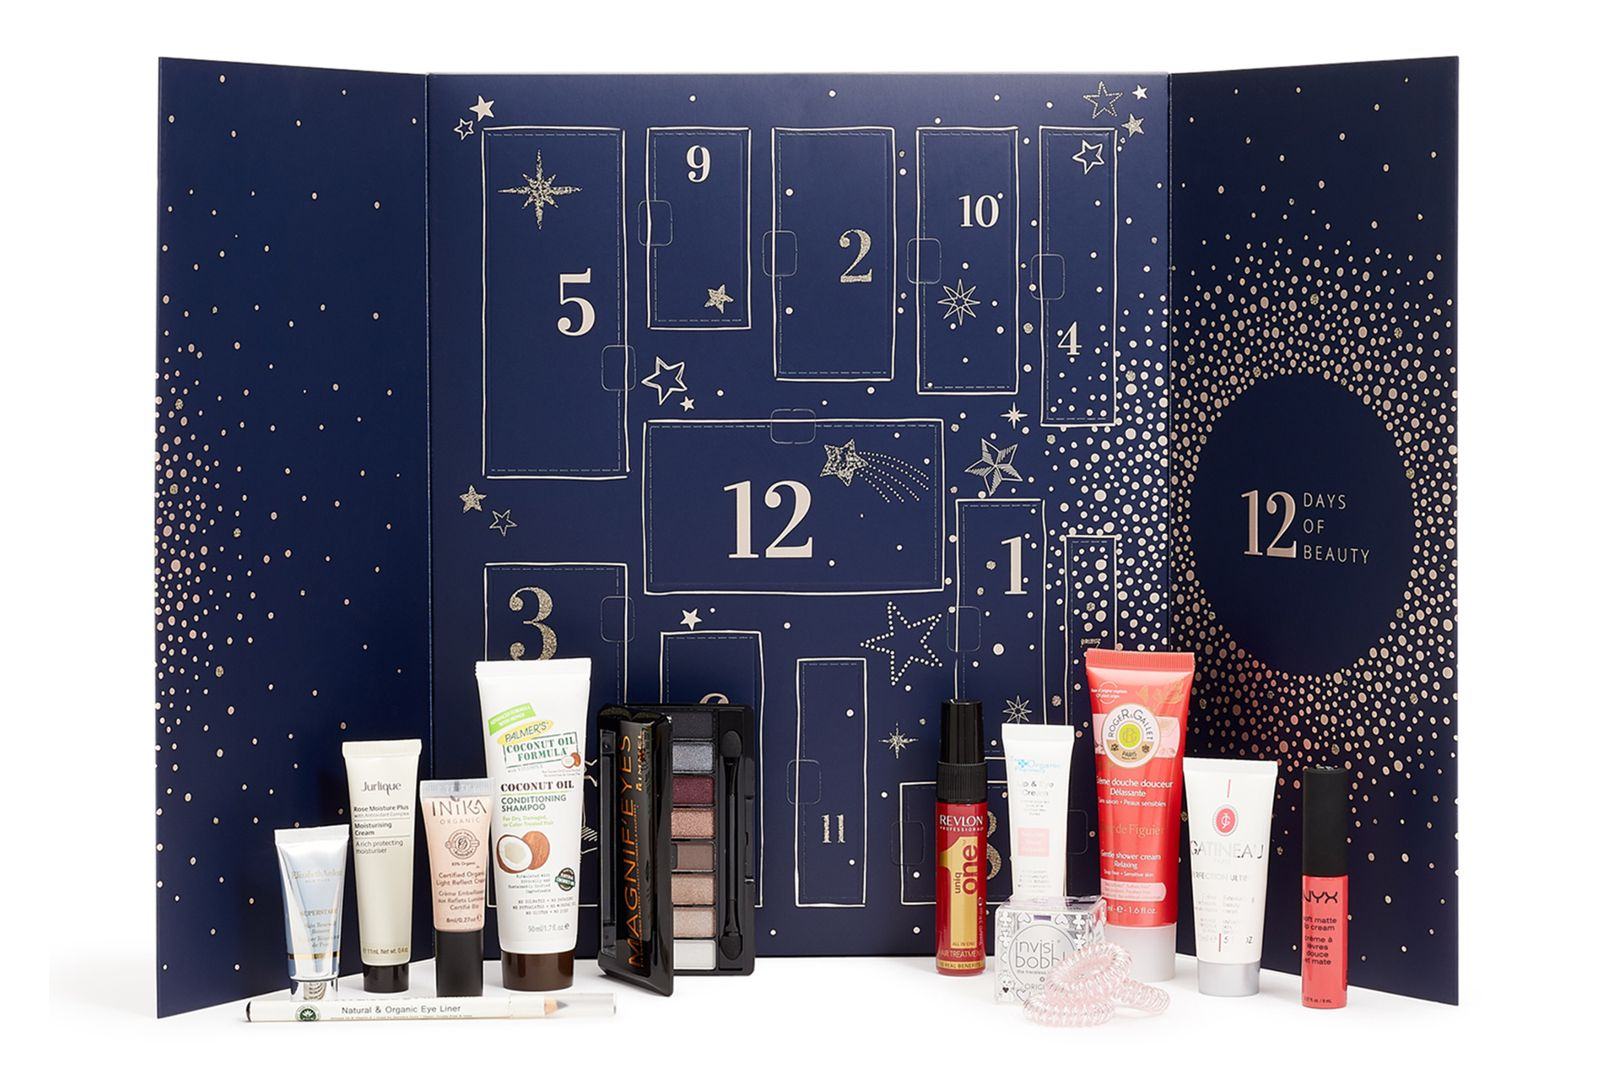 50 best beauty advent calendars 2017 beauty is unique. Black Bedroom Furniture Sets. Home Design Ideas